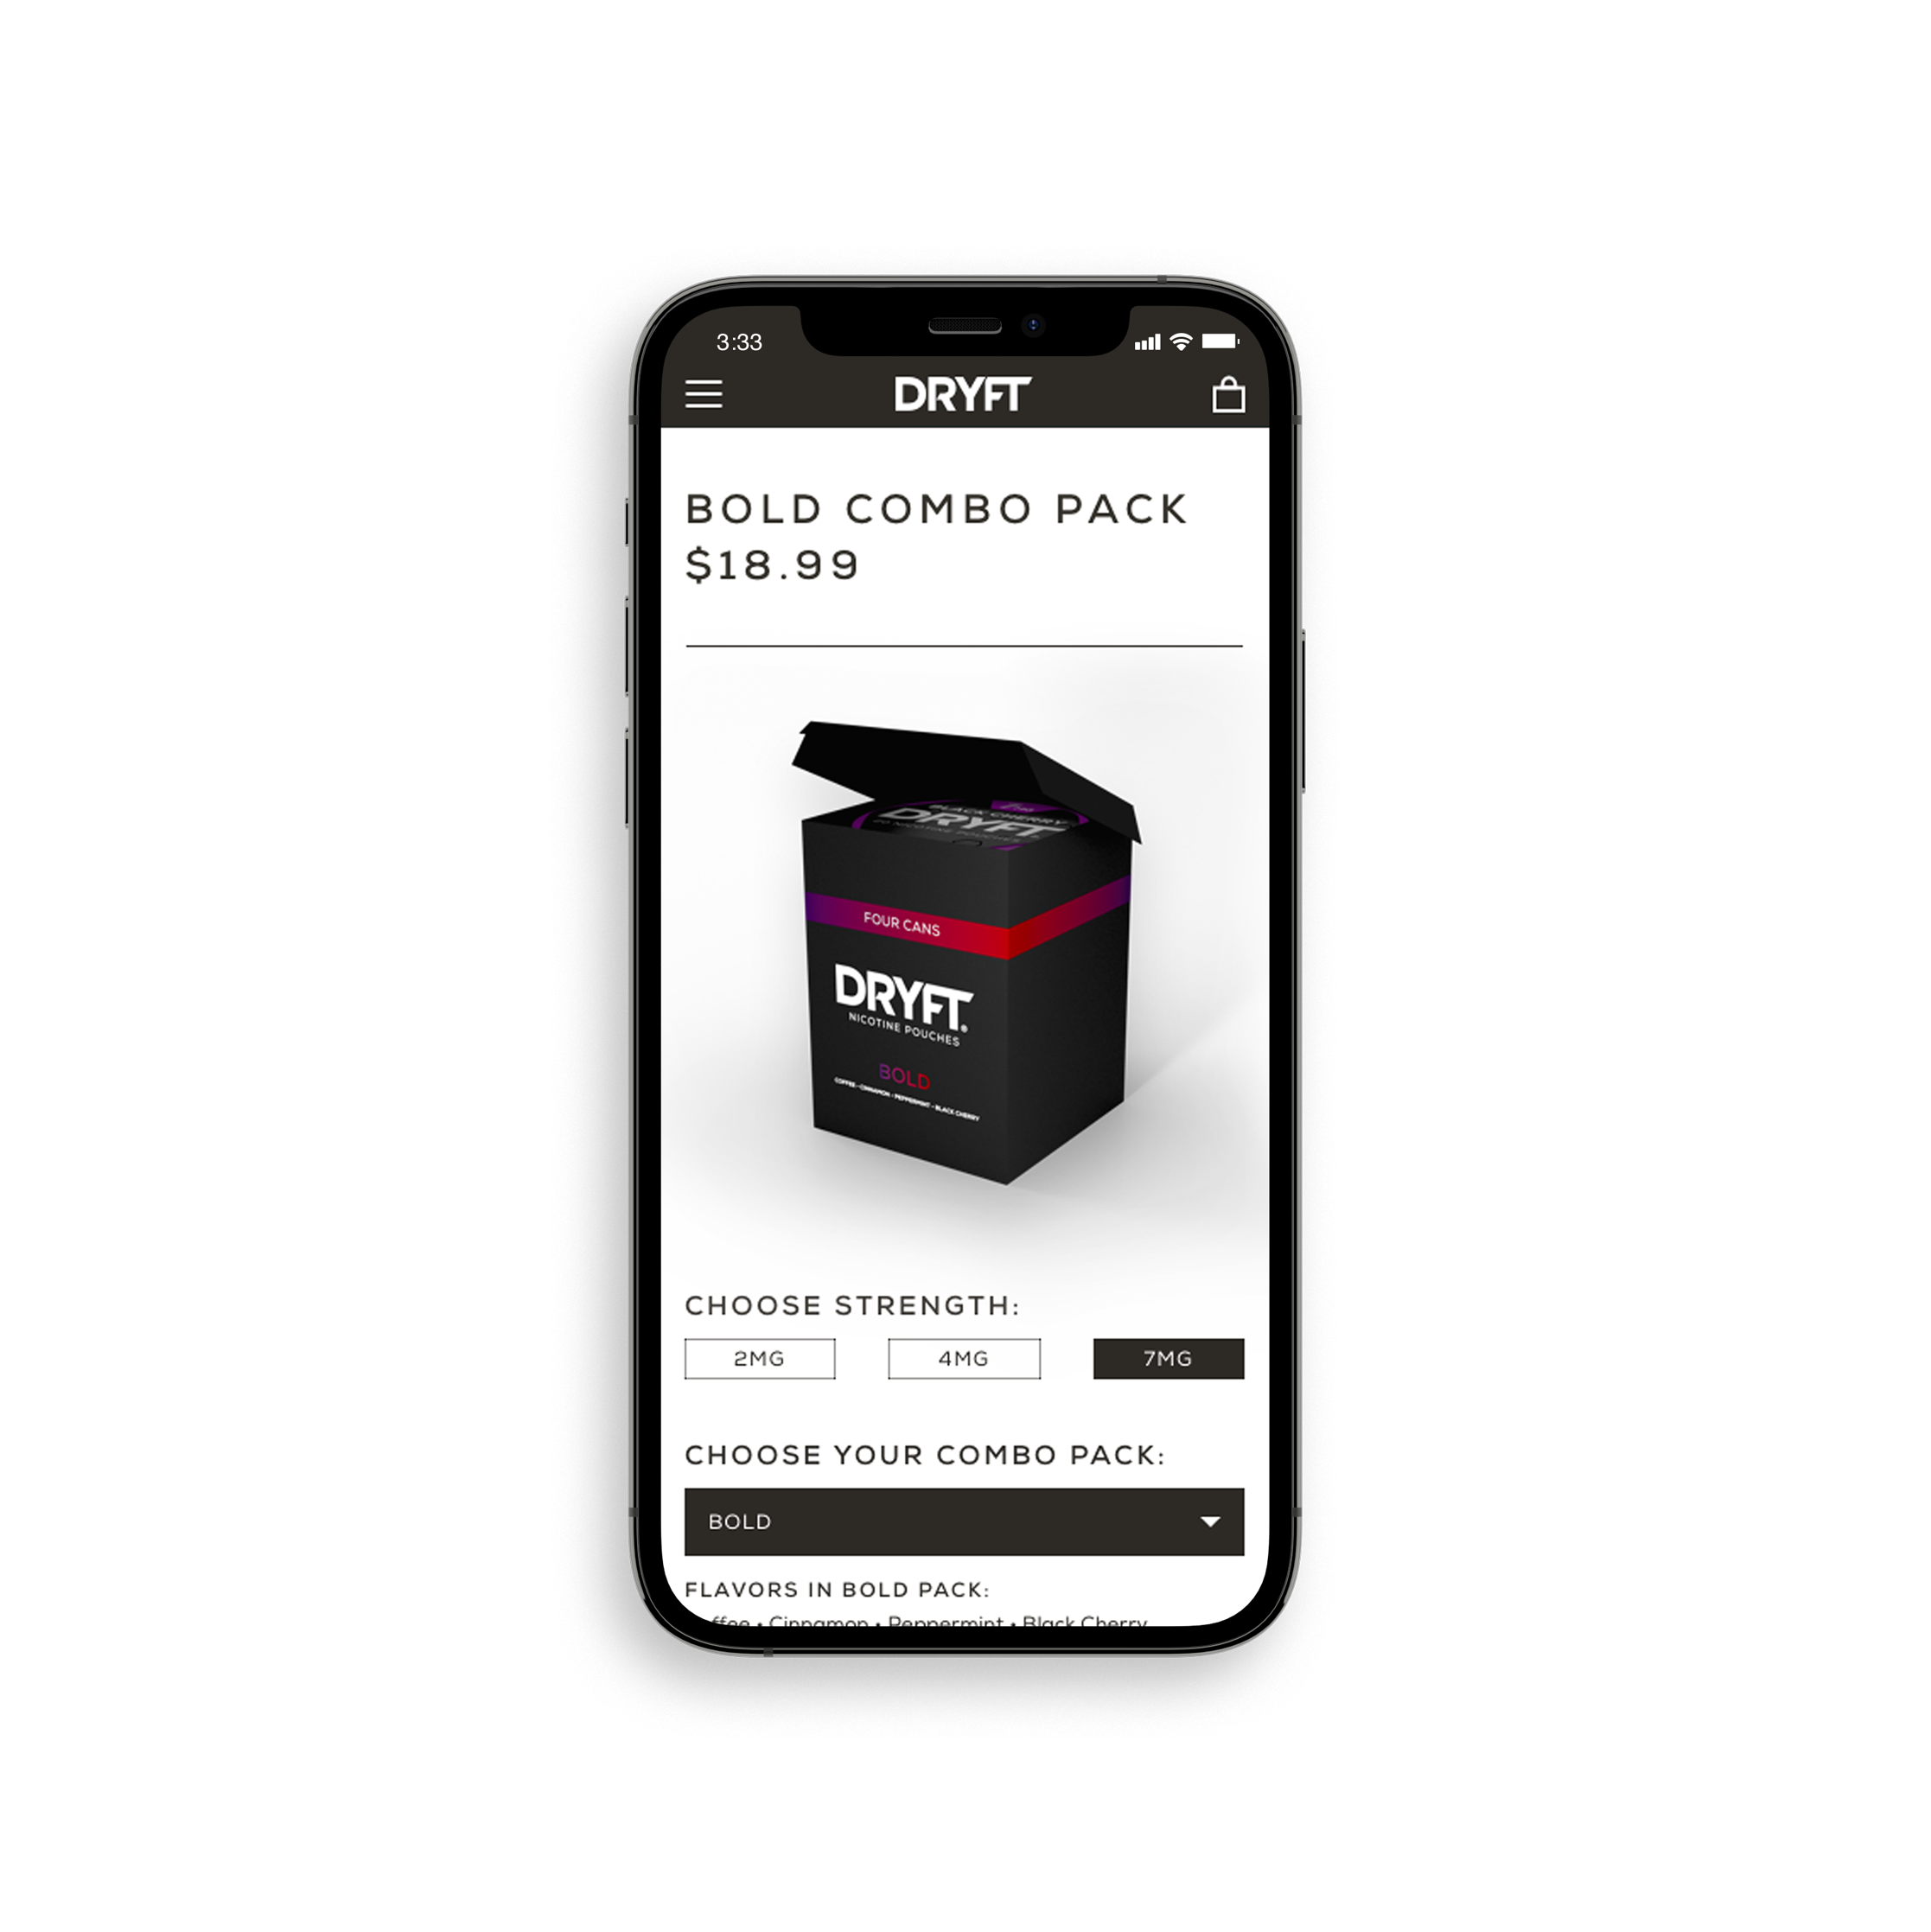 iPhone mobile DRYFT combo pack page